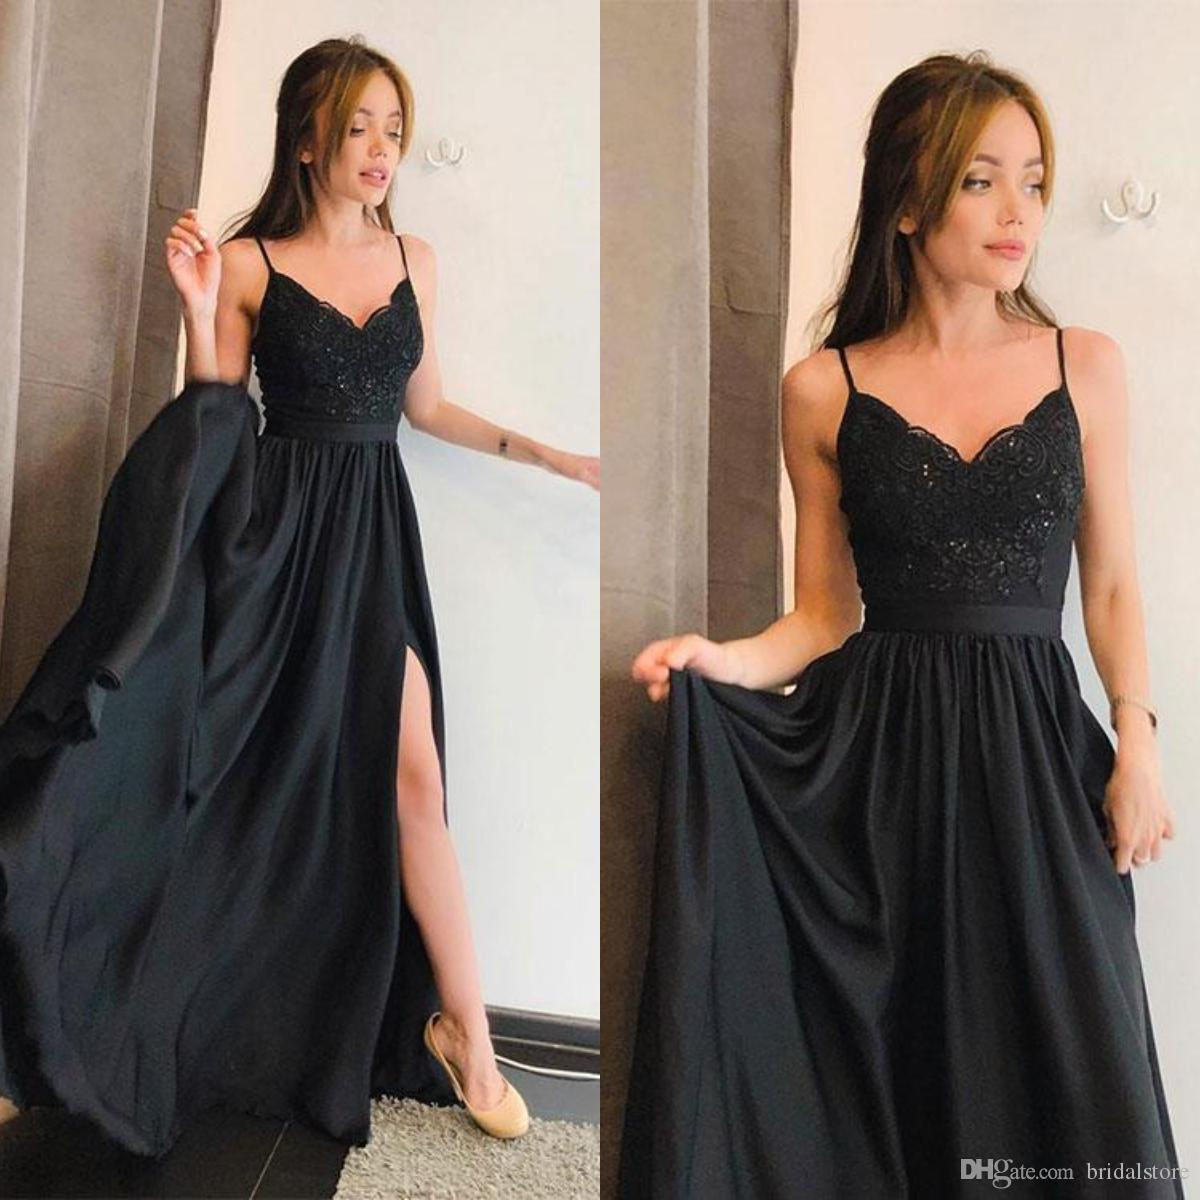 3760f5a7019b7 Simple Black Evening Dresses Straps Lace Summer Long Prom Dresses For Teens  Petite Chiffon Robes formelles soirée party 2019 With Slit Gown